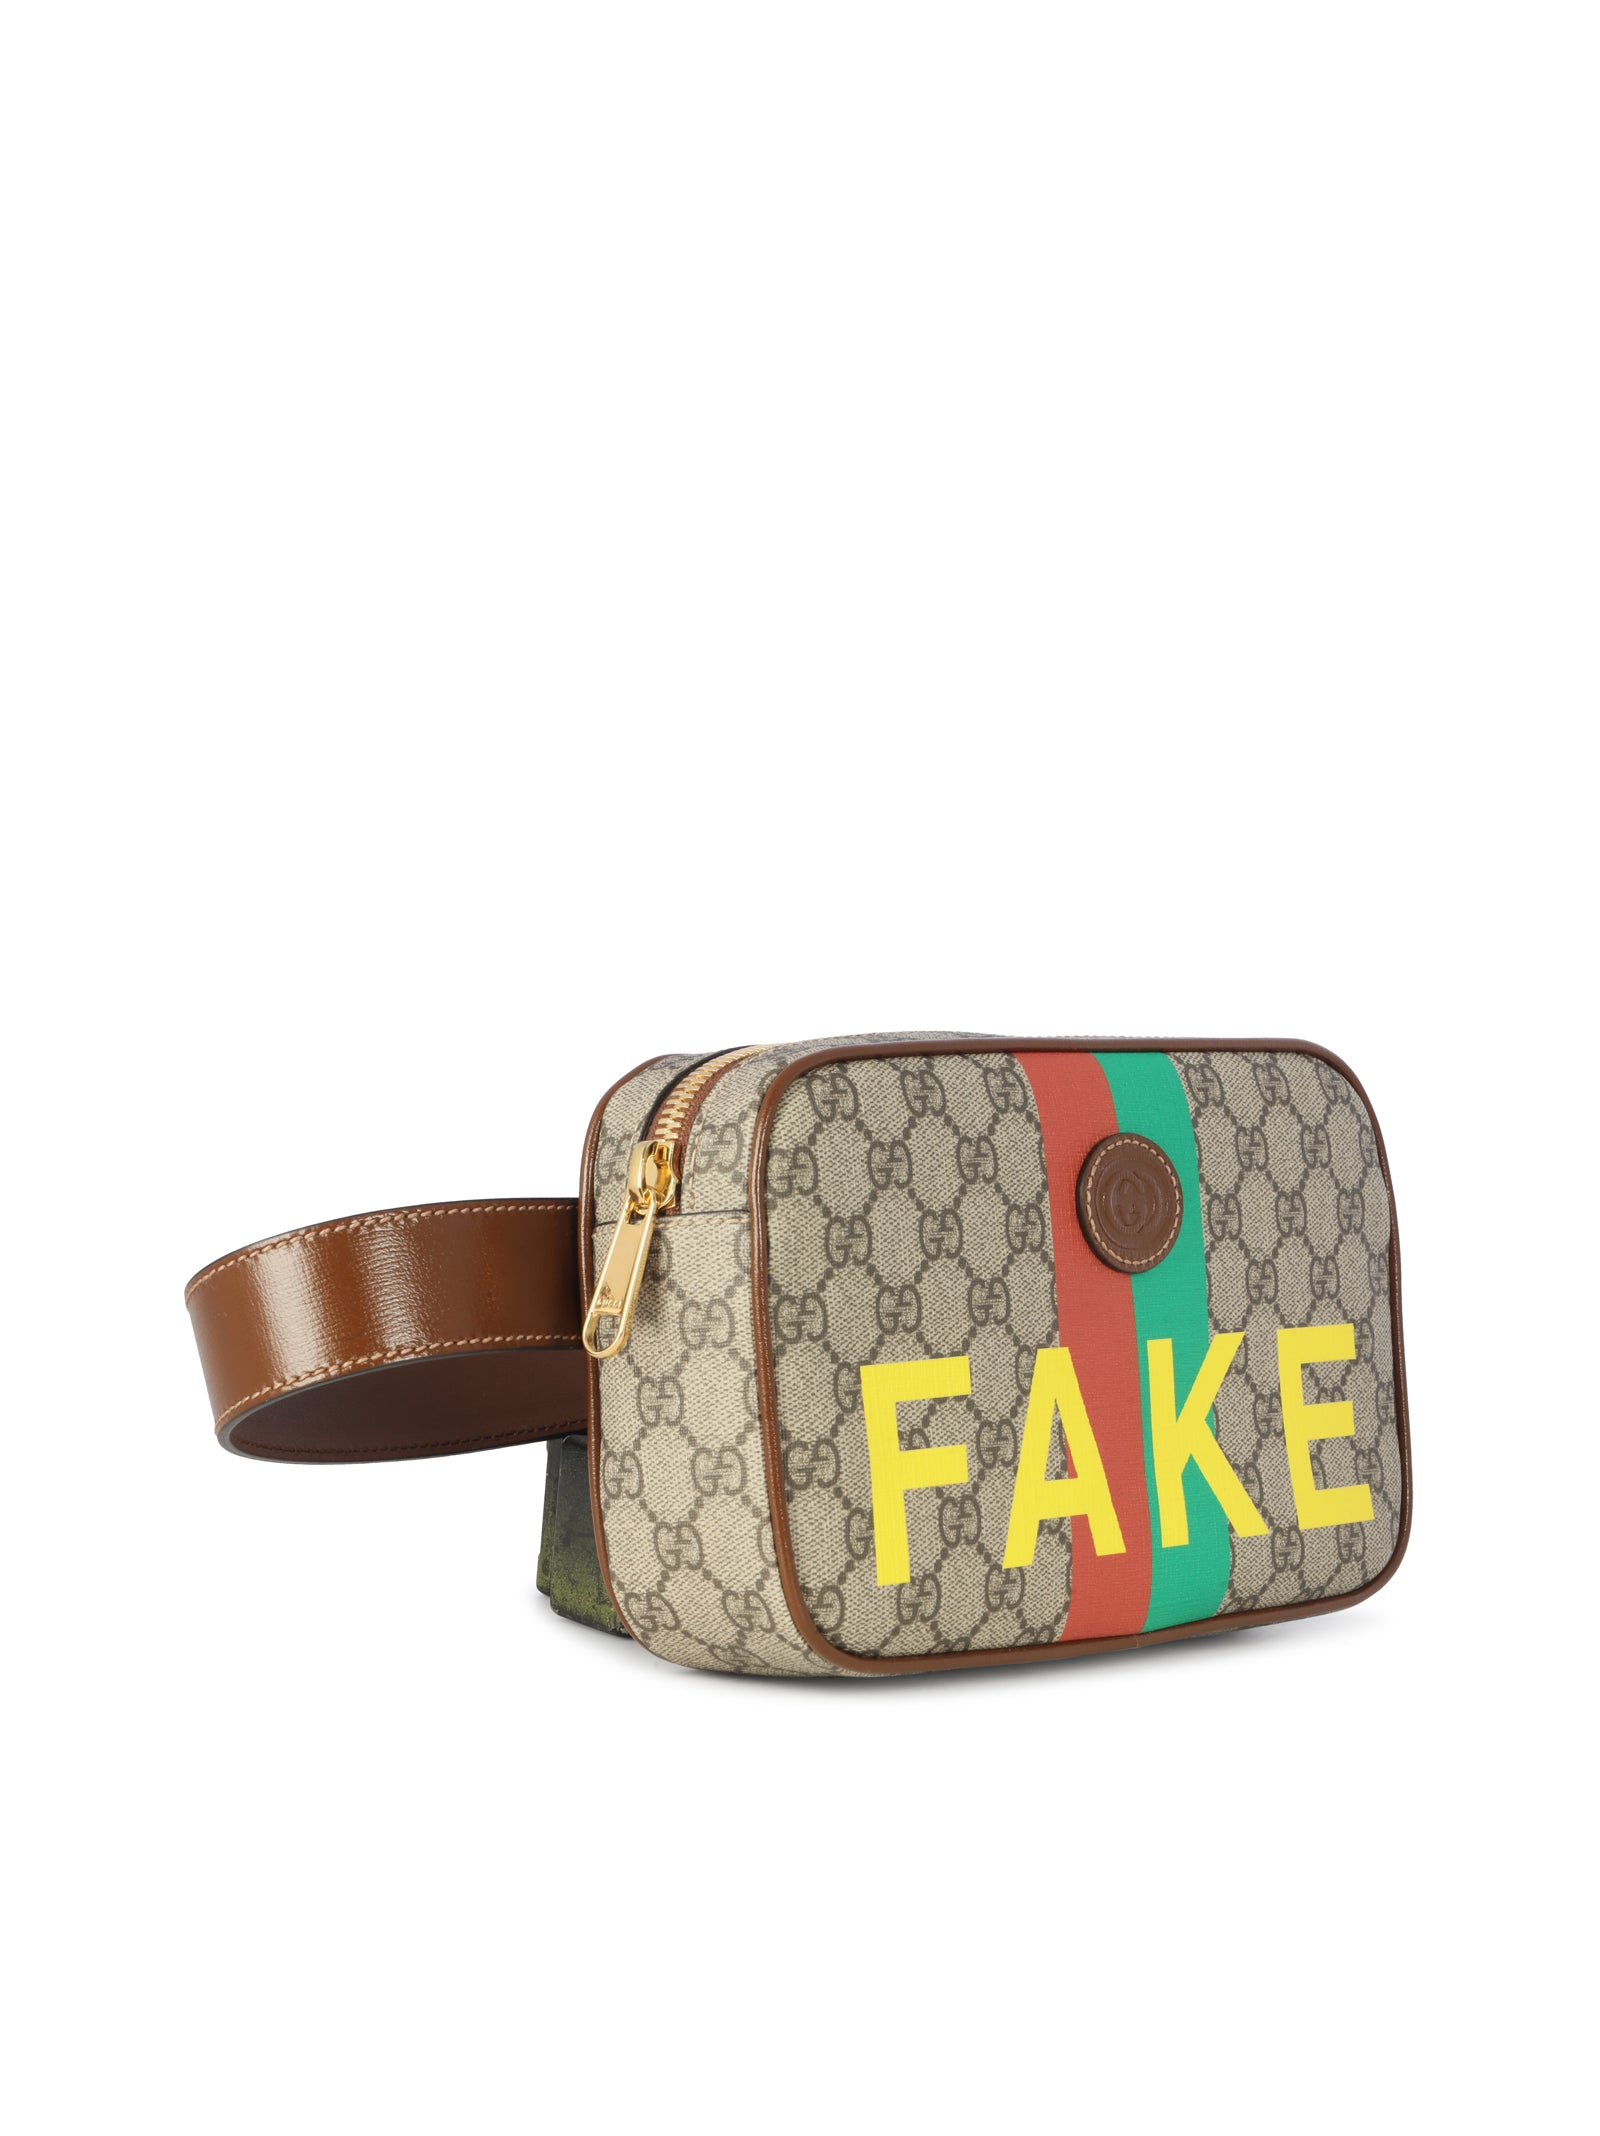 Gucci GG Supreme belt bag with fake print